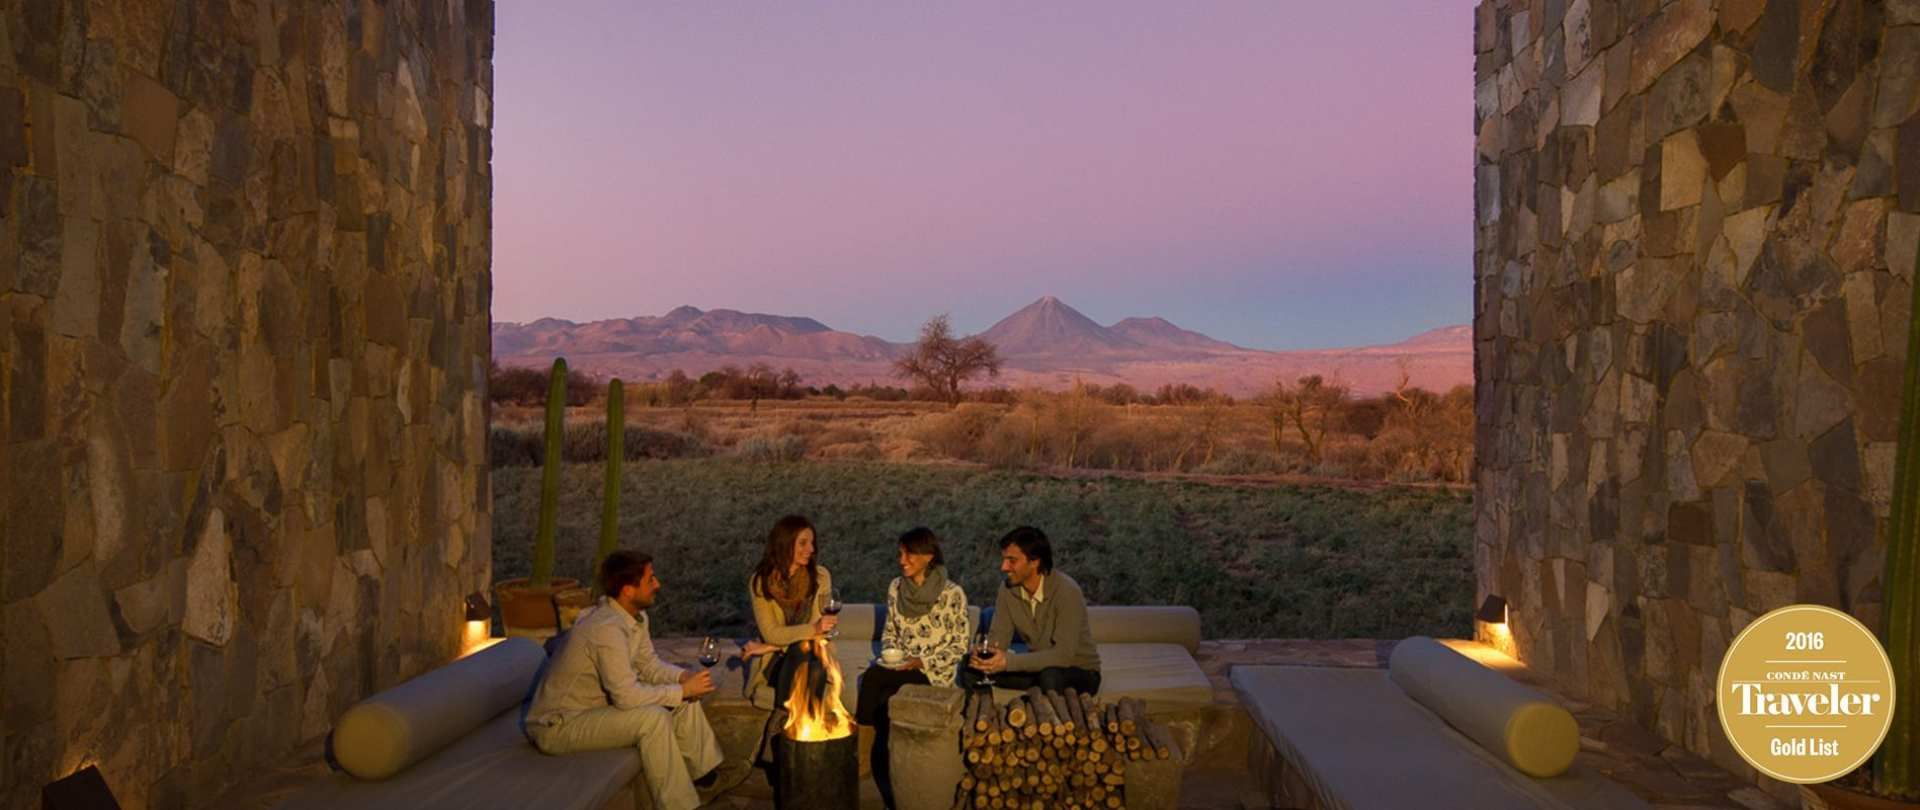 An Exclusive Lodge In The Atacama Desert With Personalized Excursions And Service Sumptuous Spa Treatments Volcano Room Views Stargazing